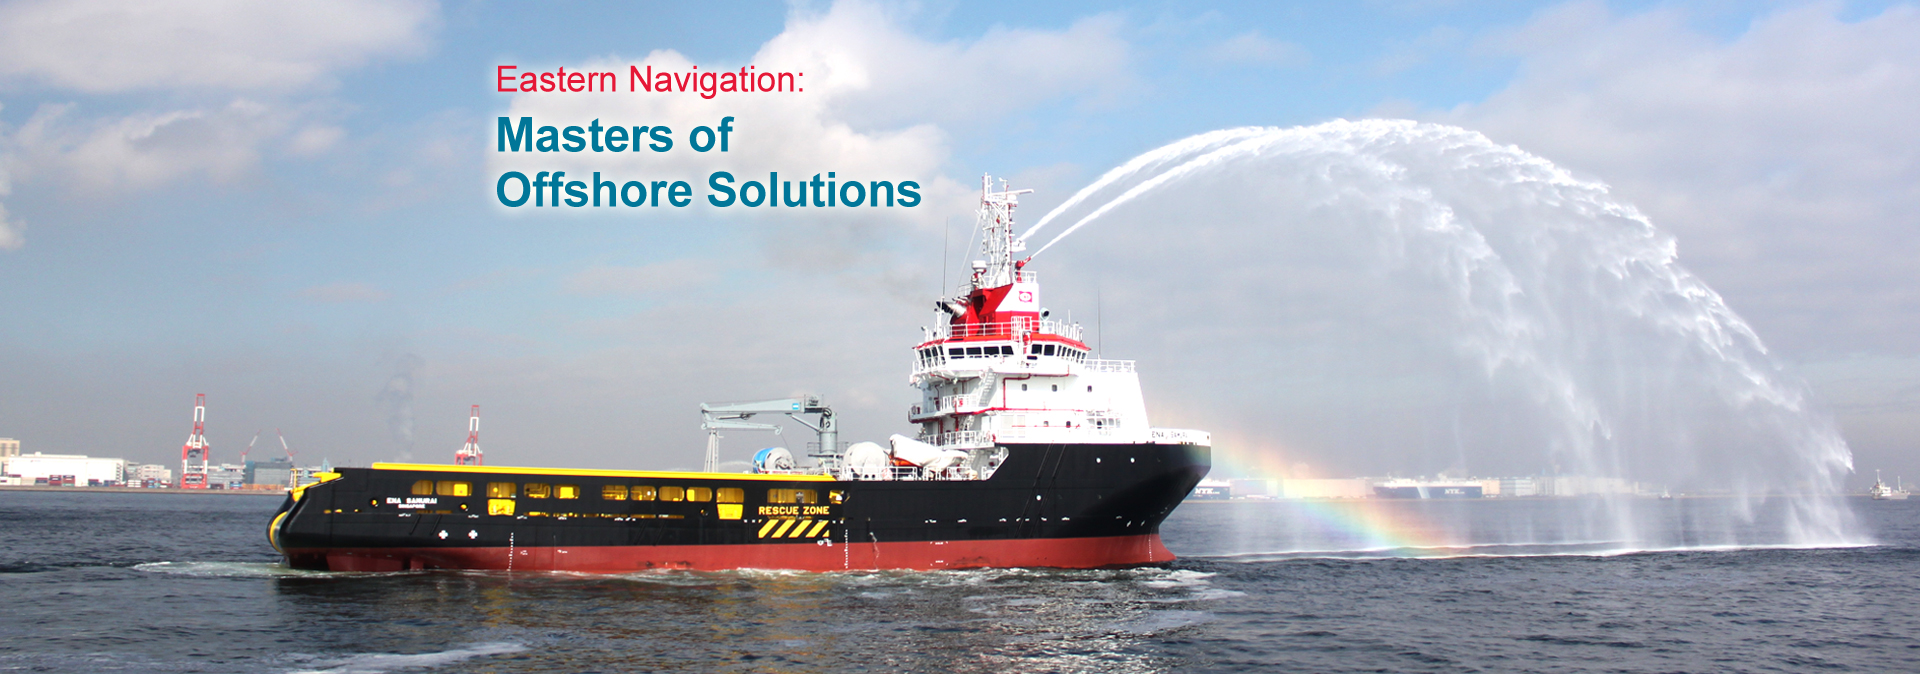 http://easternnavigation.com/our-fleet/anchor-handling-towing-supply-vessels/